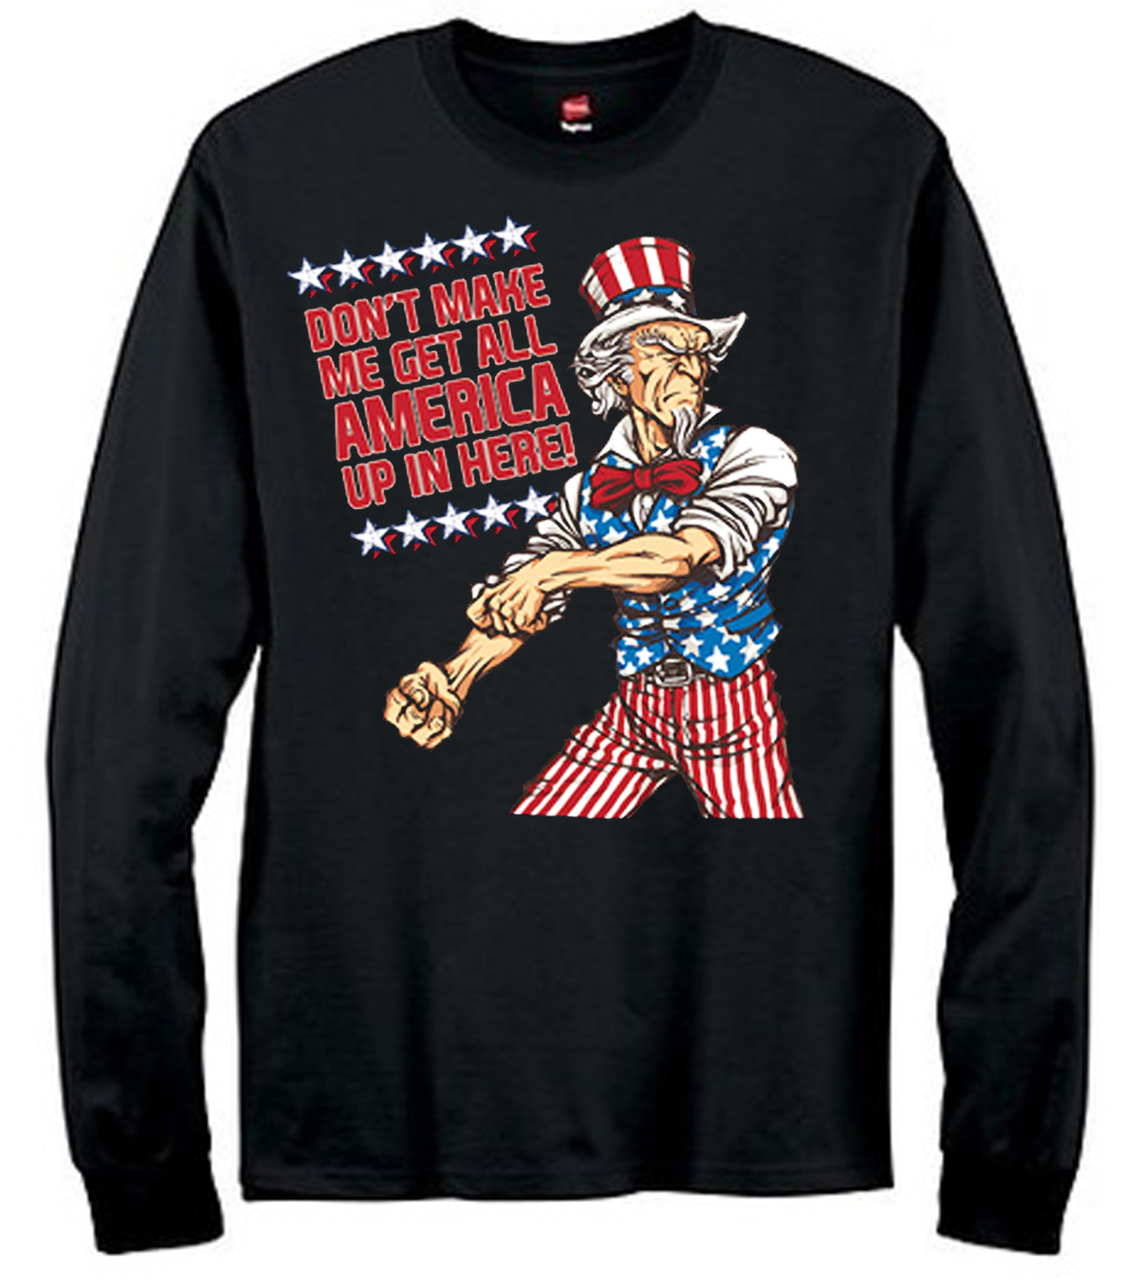 Uncle Sam Get America Up In Here! Men's Long Sleeve T-Shirt